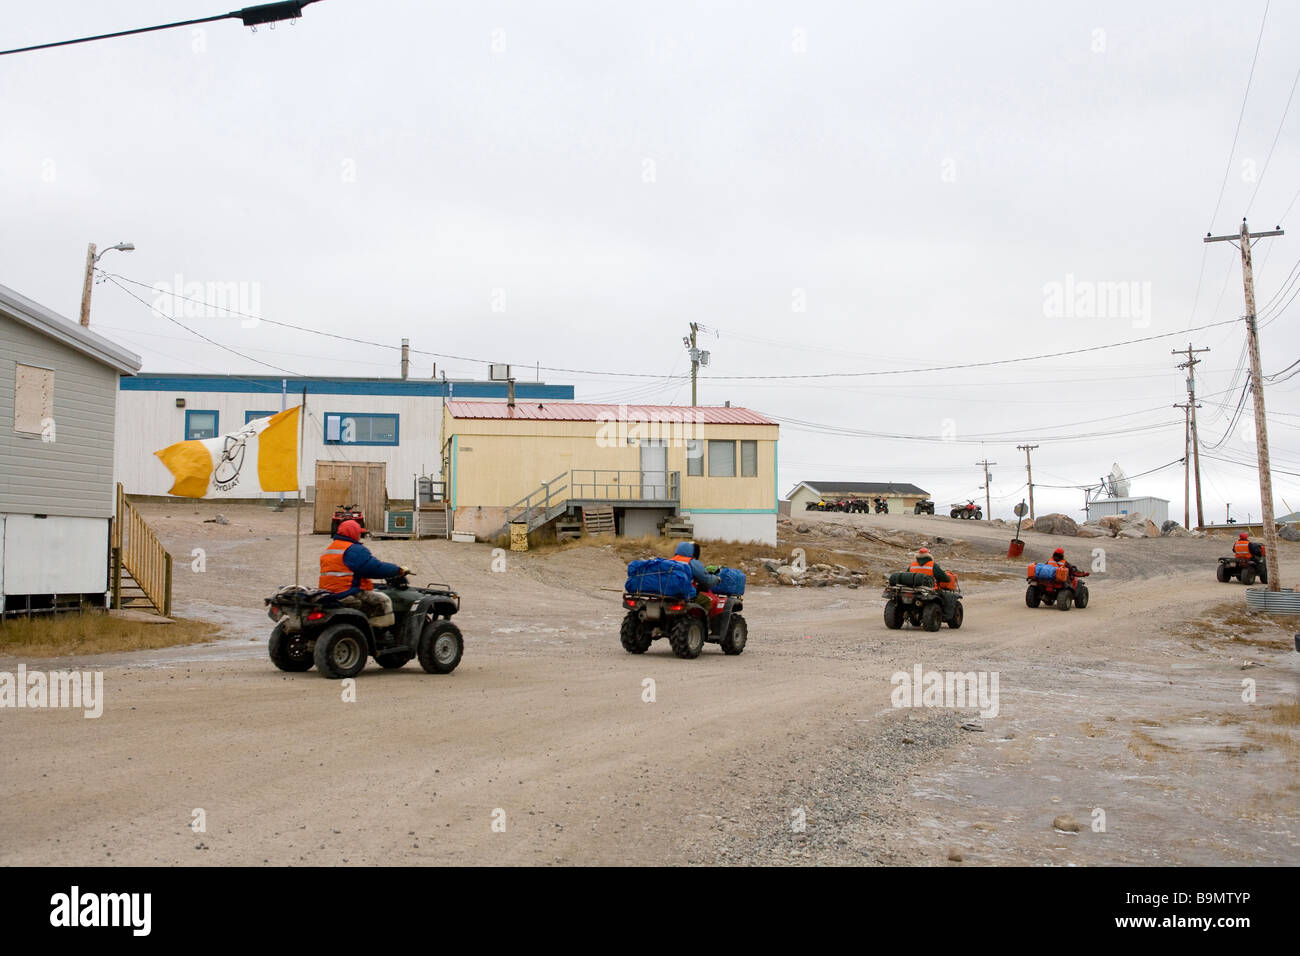 Dirt track with row of Canadian Rangers leaving on quad bikes, Canadian Arctic, Canada Stock Photo